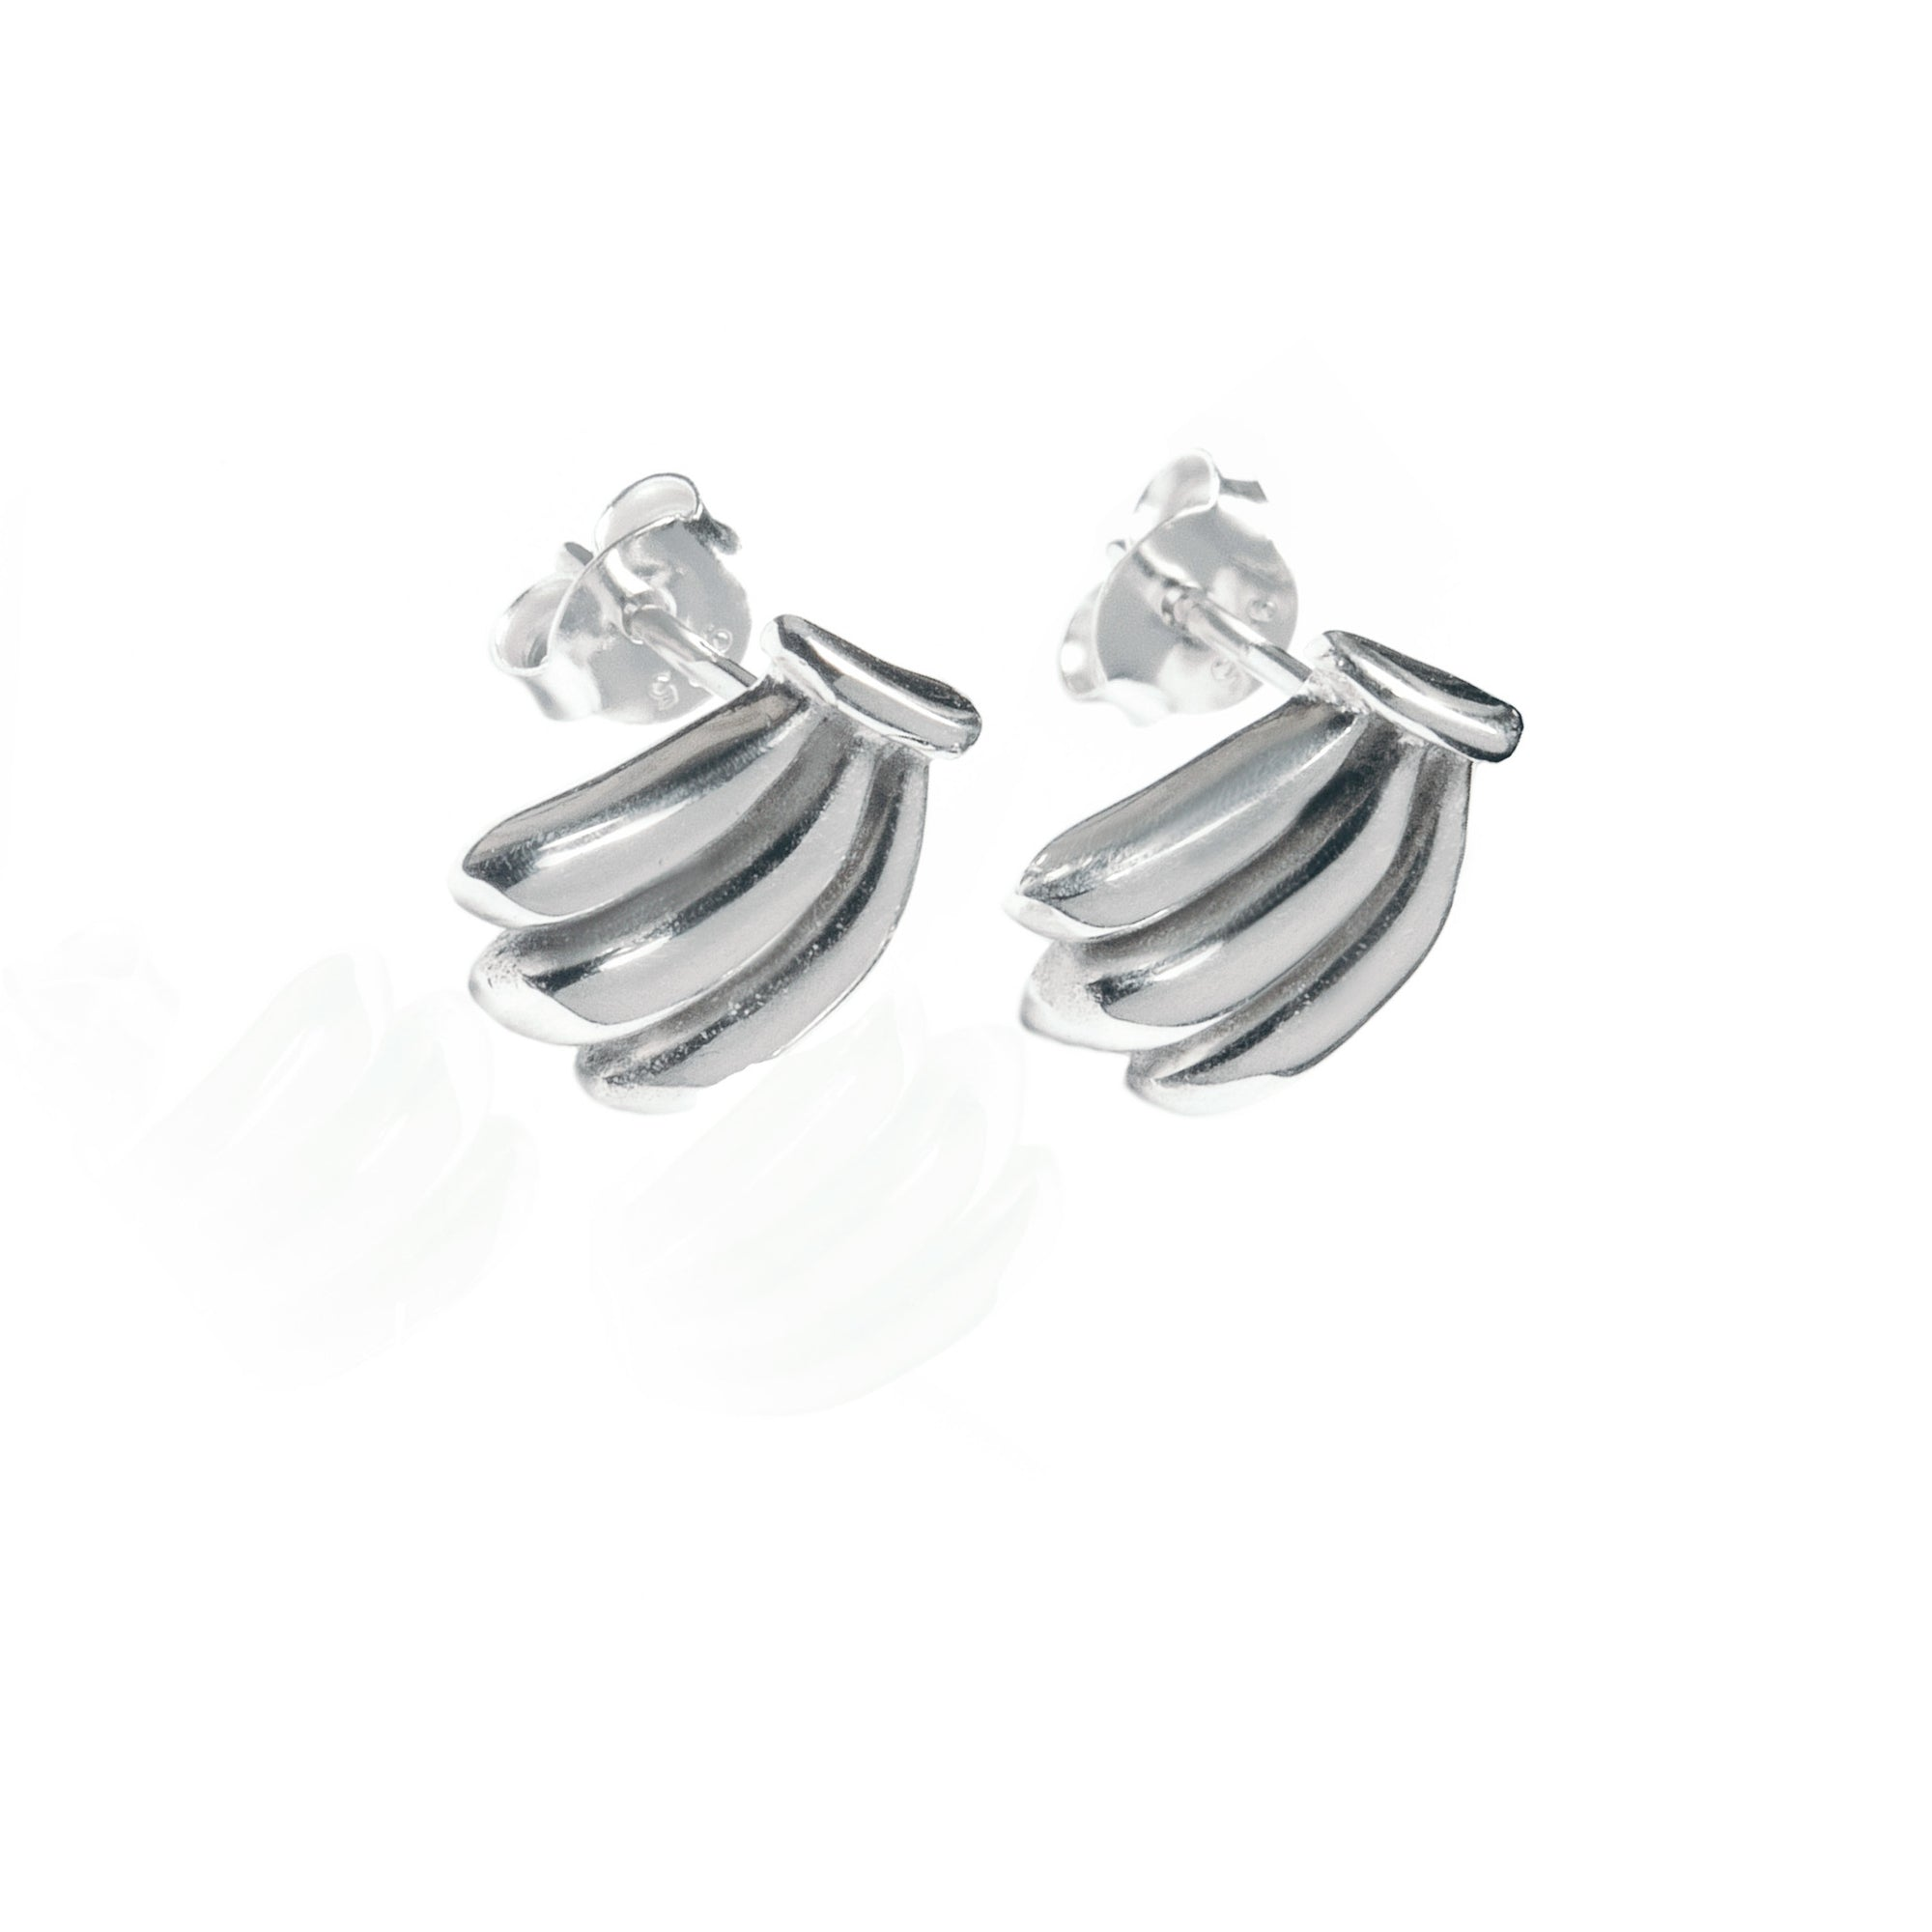 Luna & Rose - You Drive me Bananas Earrings - Silver